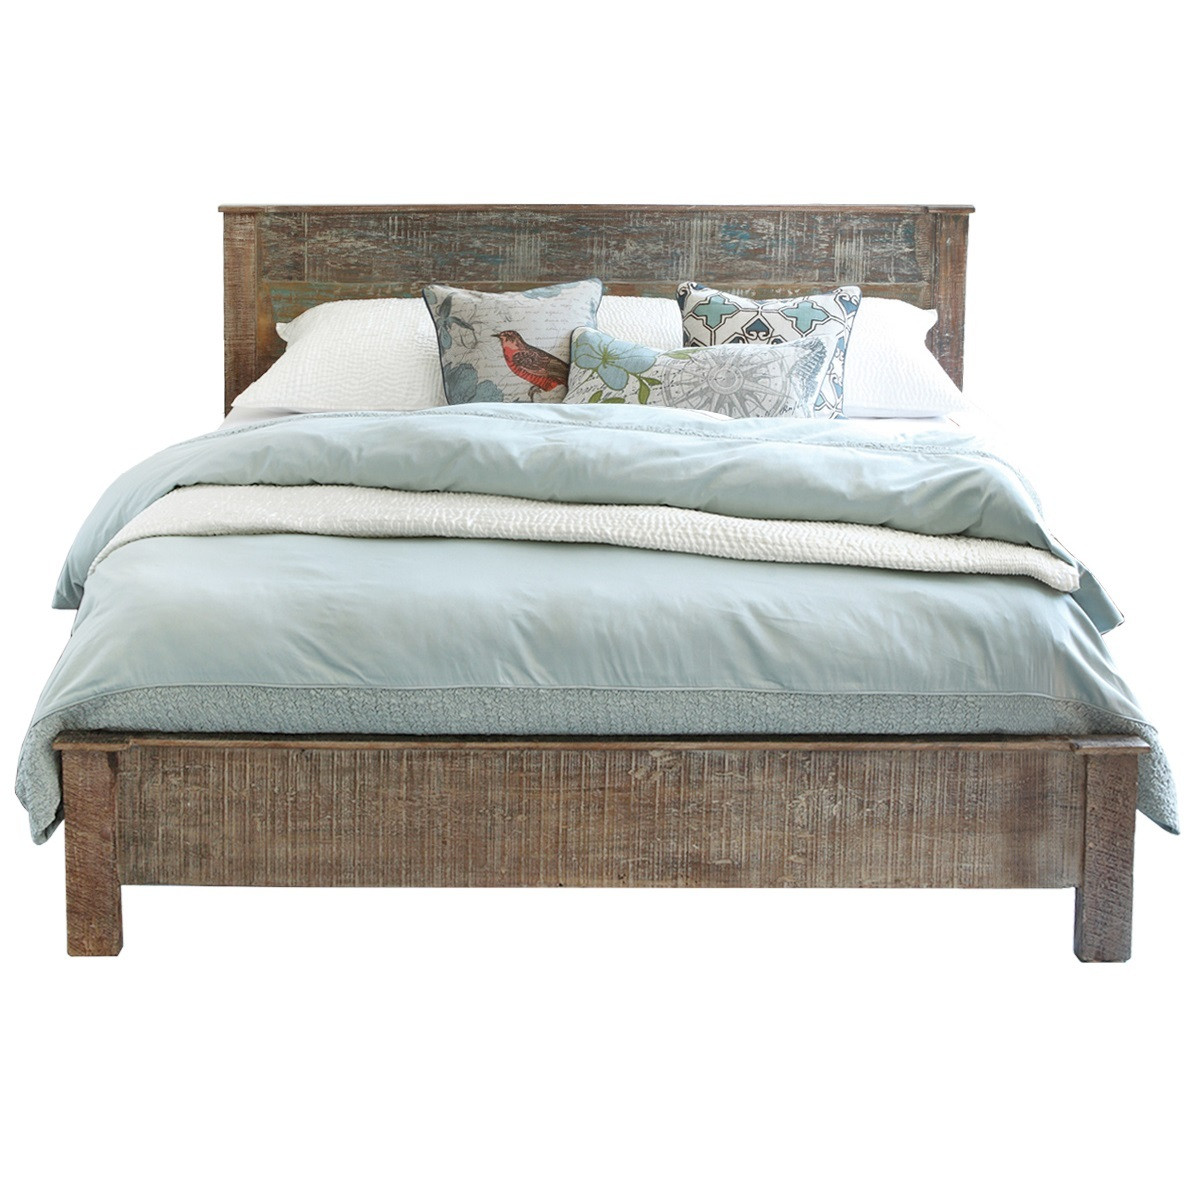 bedroom design california king wood bed frame